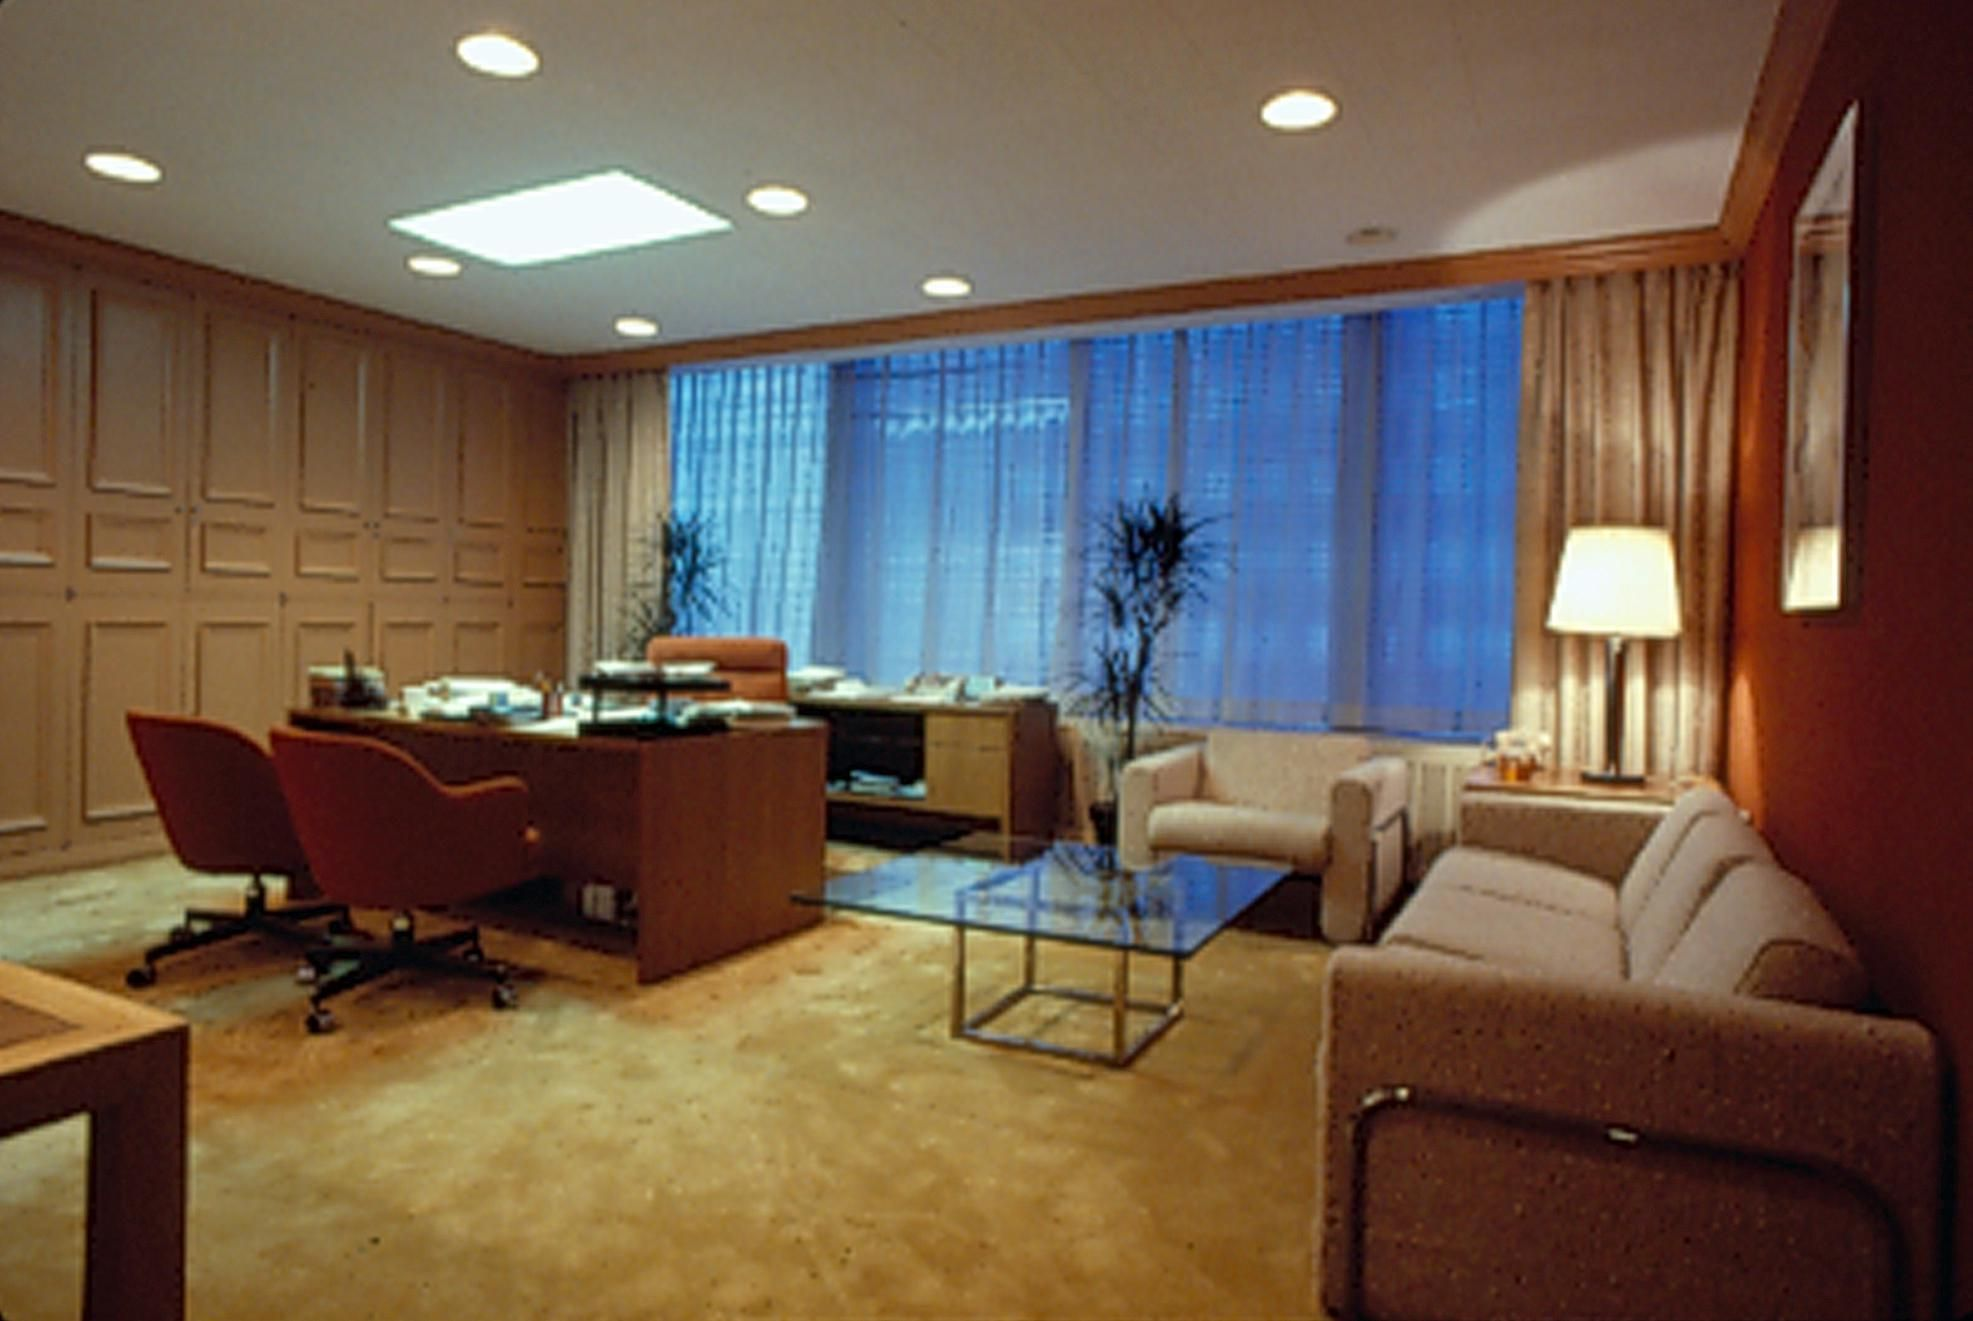 Vp executive office this office uses furniture carpeting for Executive office design